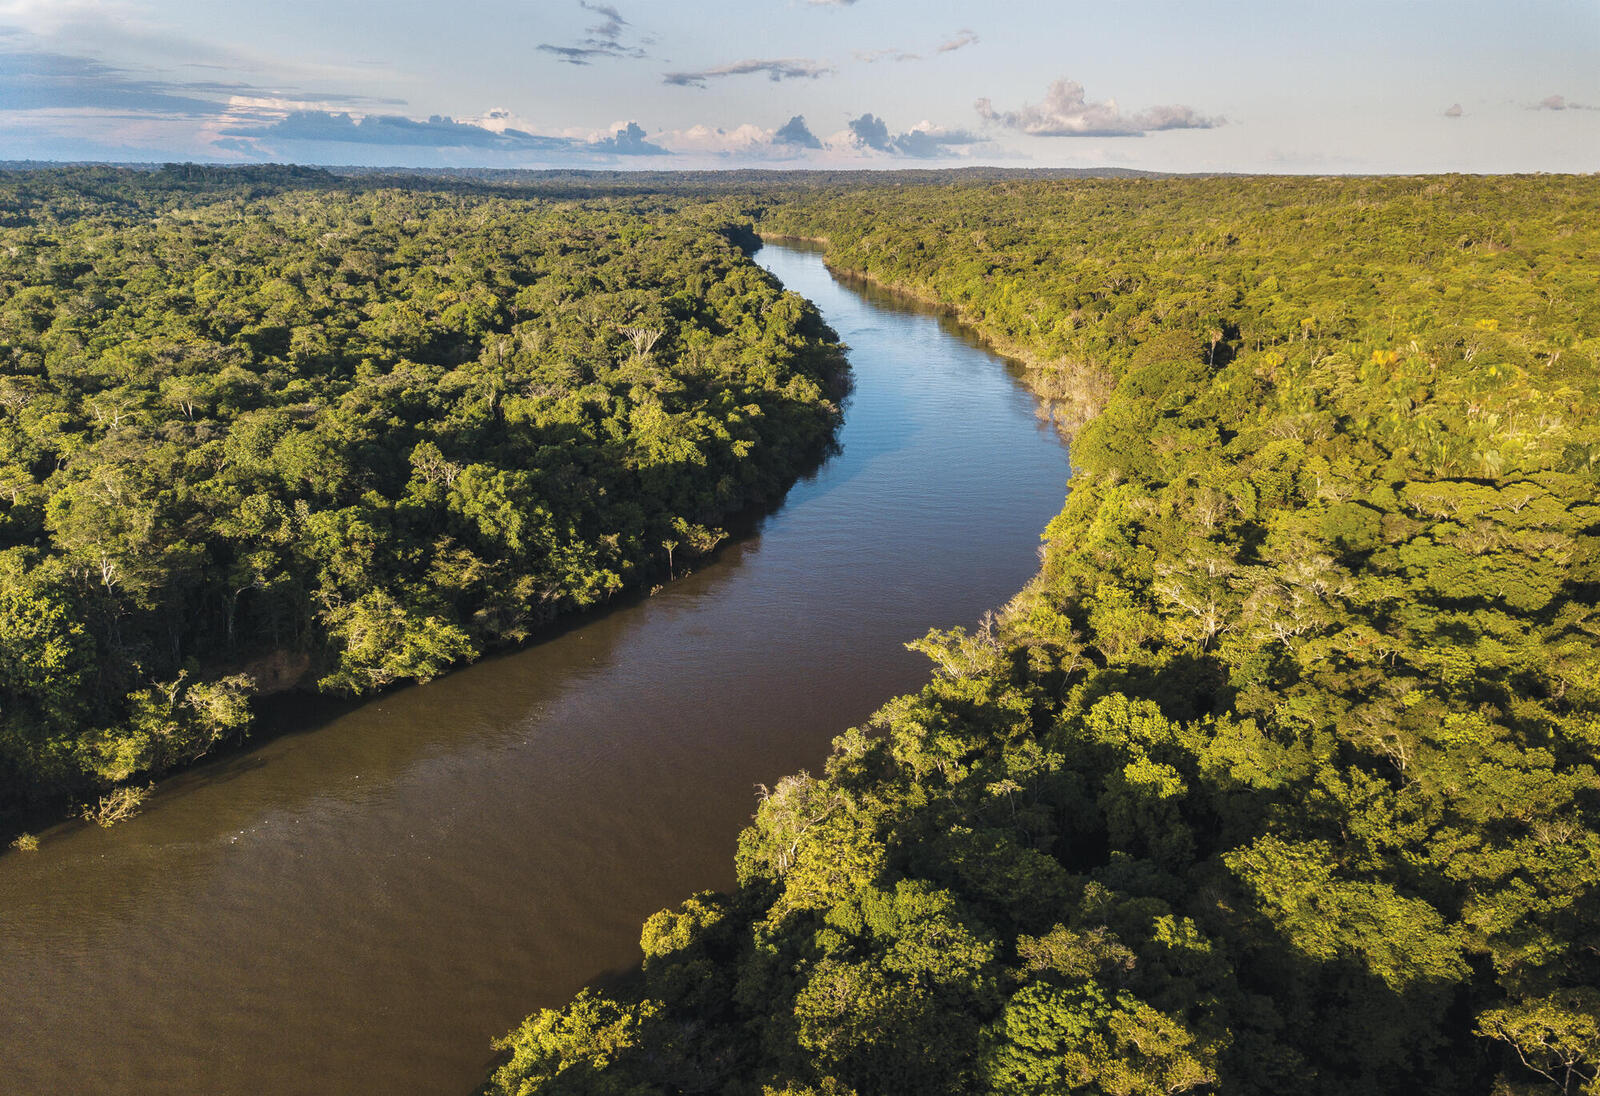 Landscape of river from above